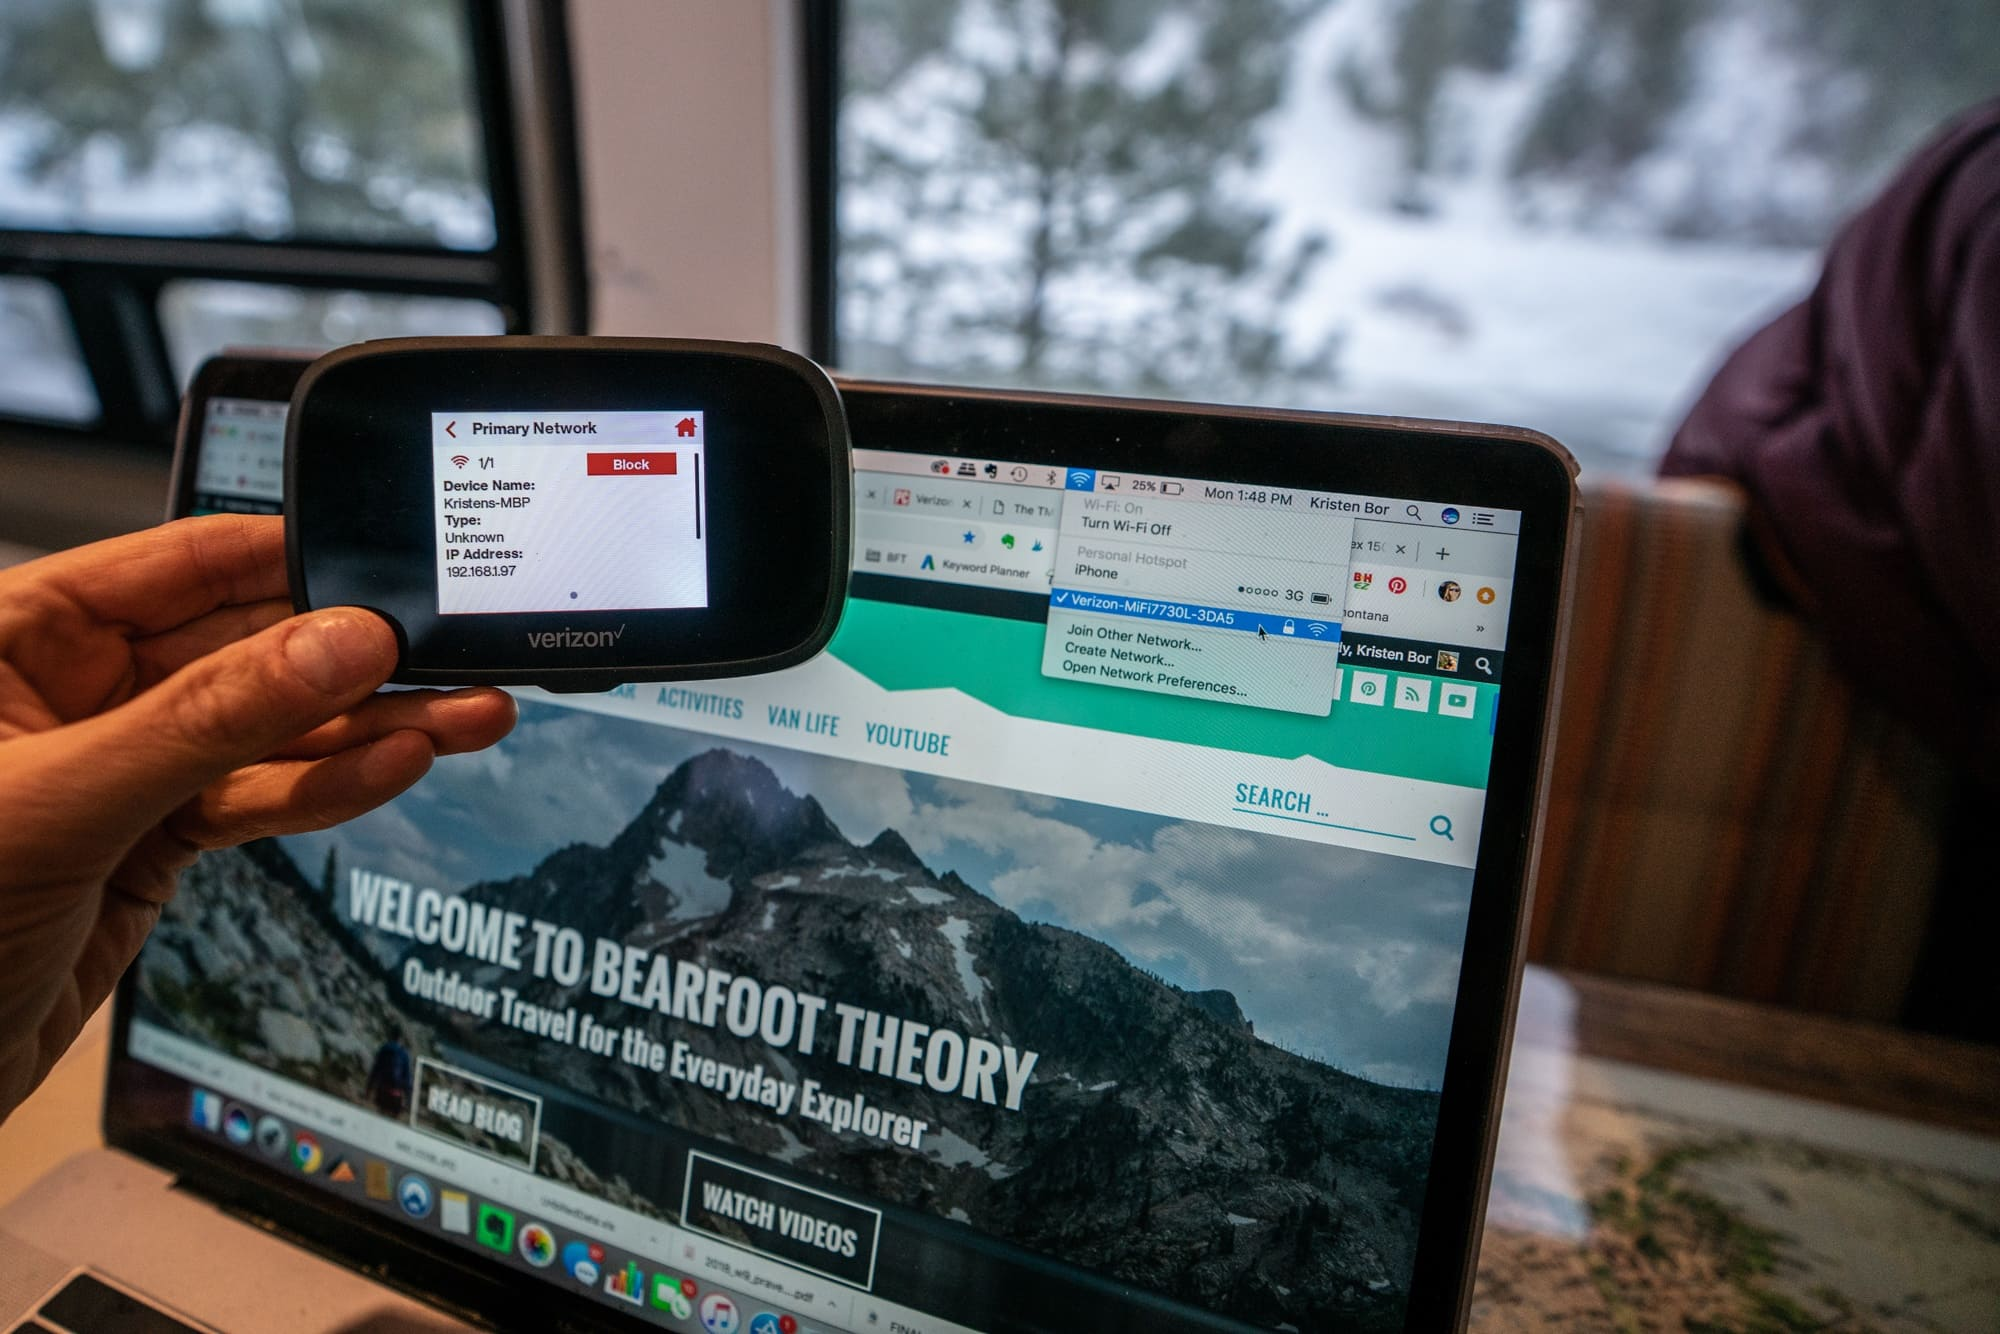 The Verizon Jetpack is a simple hotspot device for staying connected on the road. Learn more about vanlife internet in this blog post.